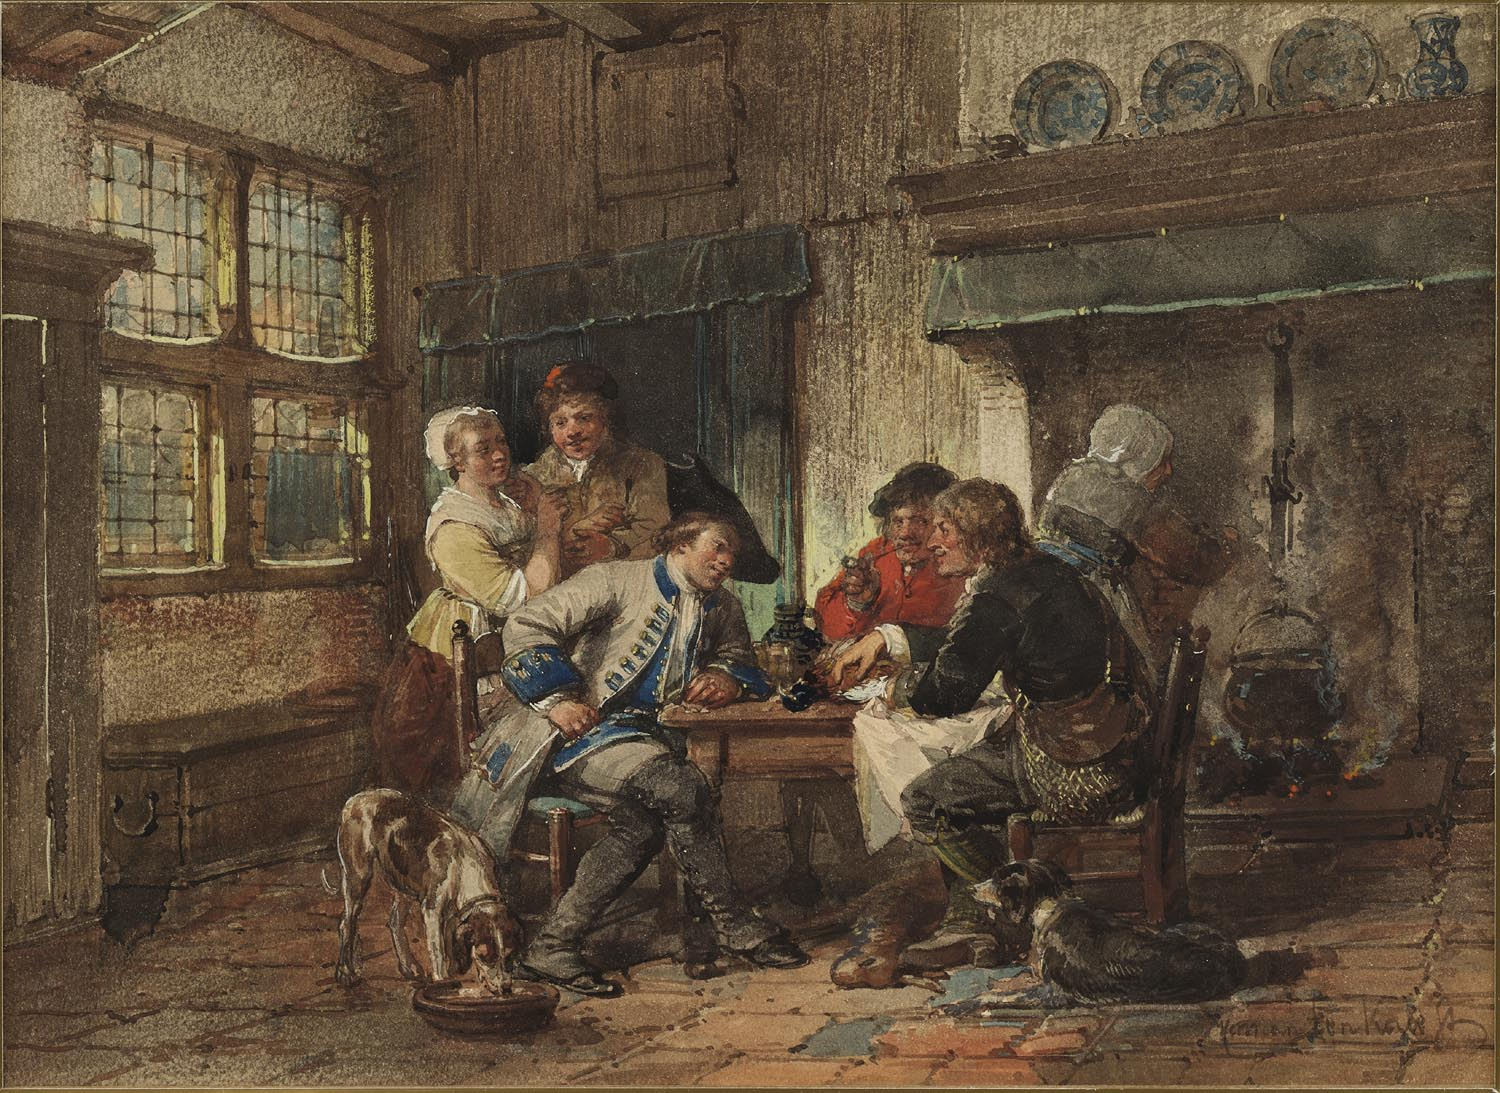 Herman ten Kate | In the tavern | Kunsthandel Bies | Bies Gallery